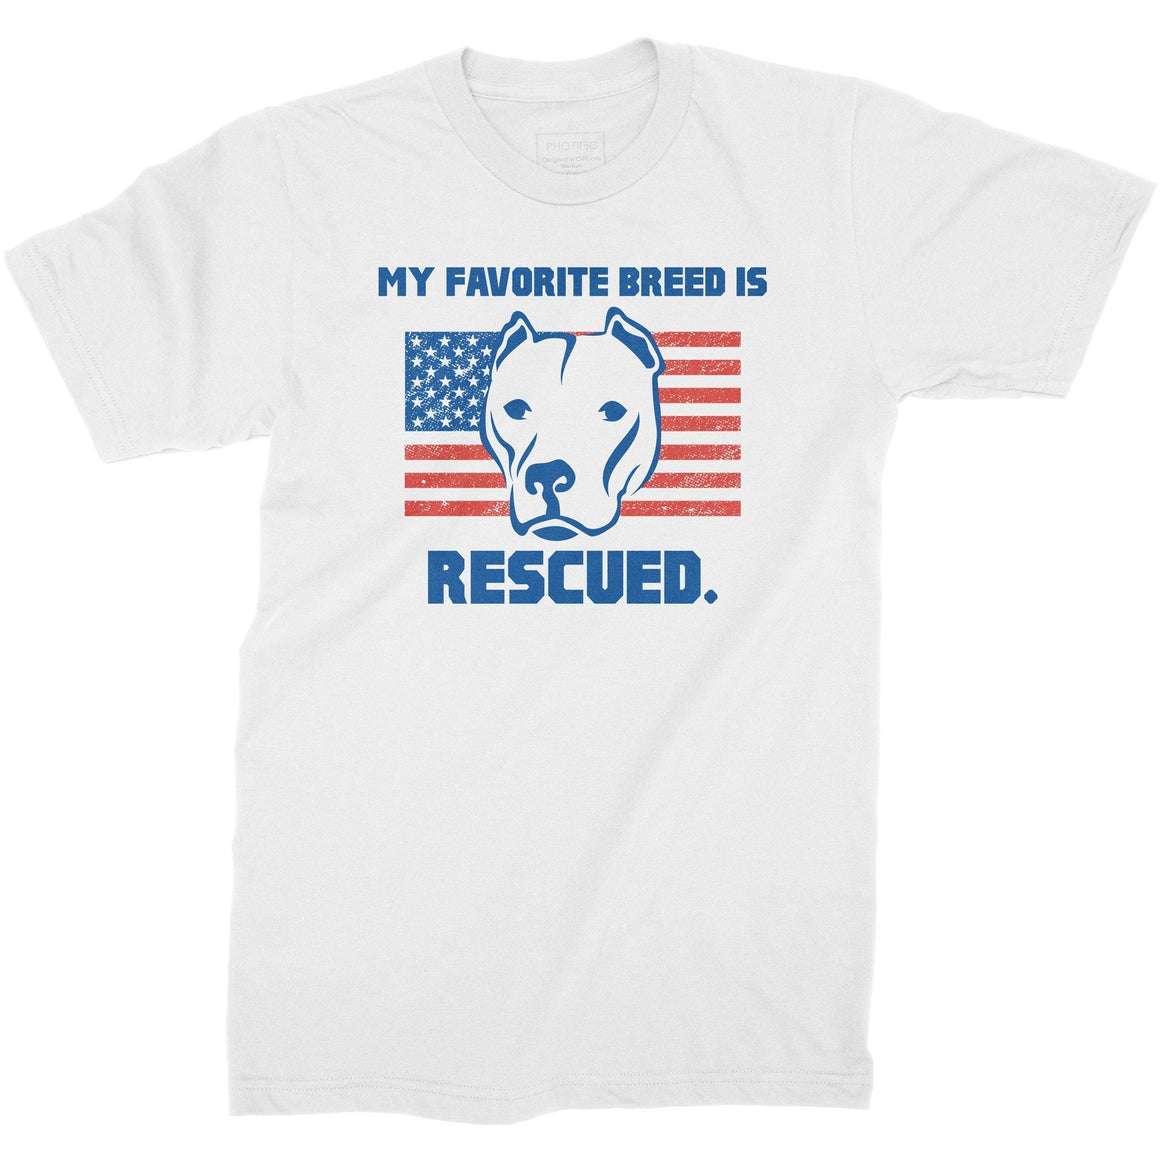 My Favorite Breed Is Rescued White Youth Pitbull Shirt